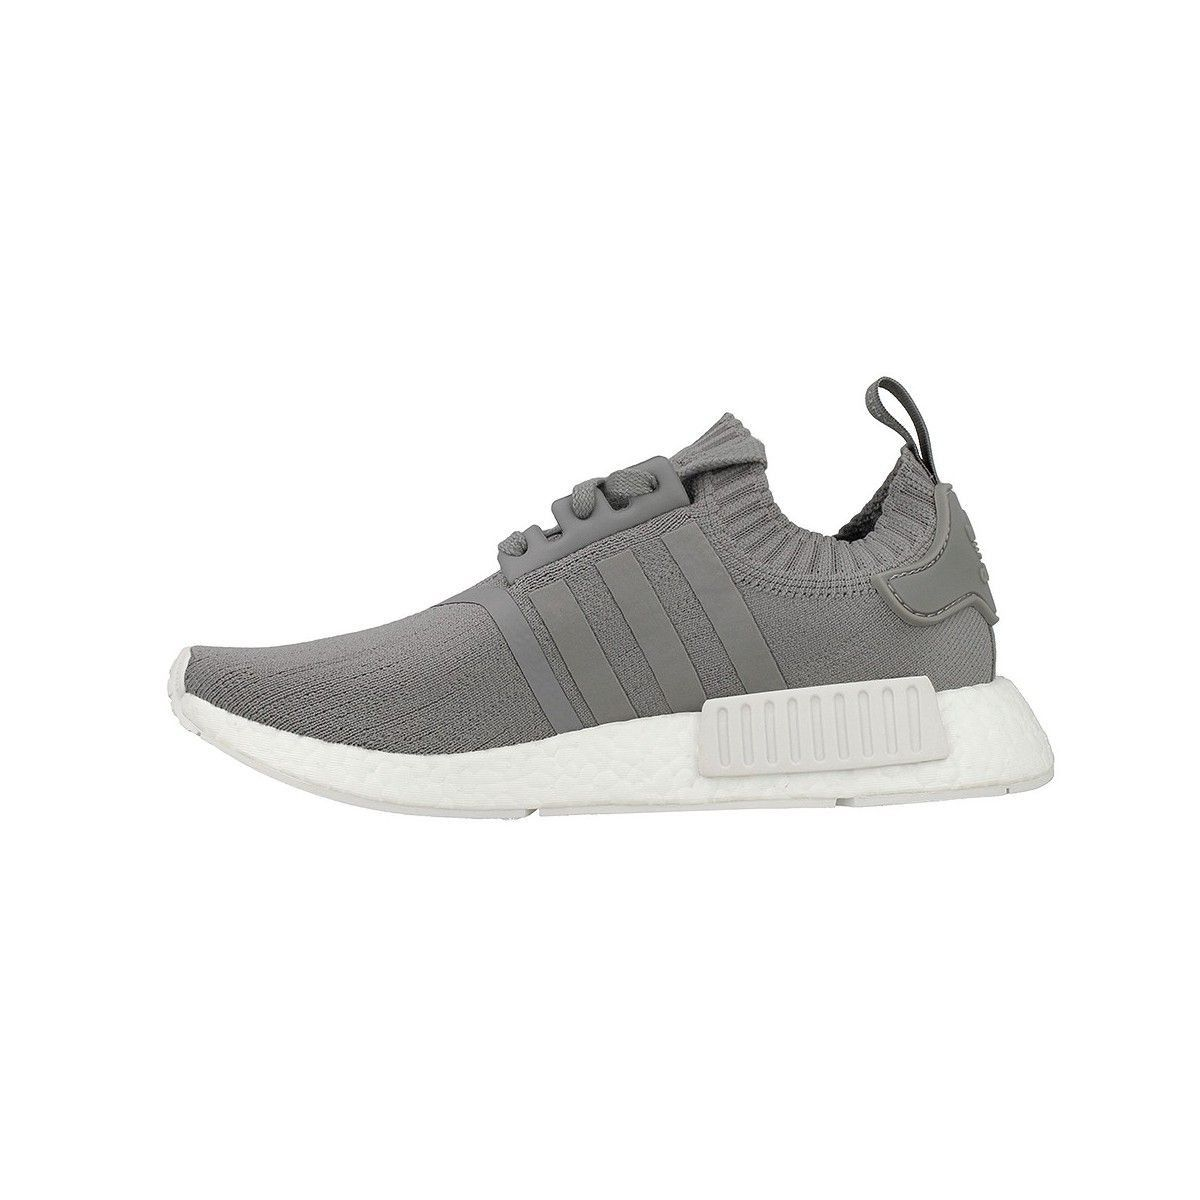 Baskets Adidas Nmd R1 Pk Gris Homme Taille : 36;37;38;39